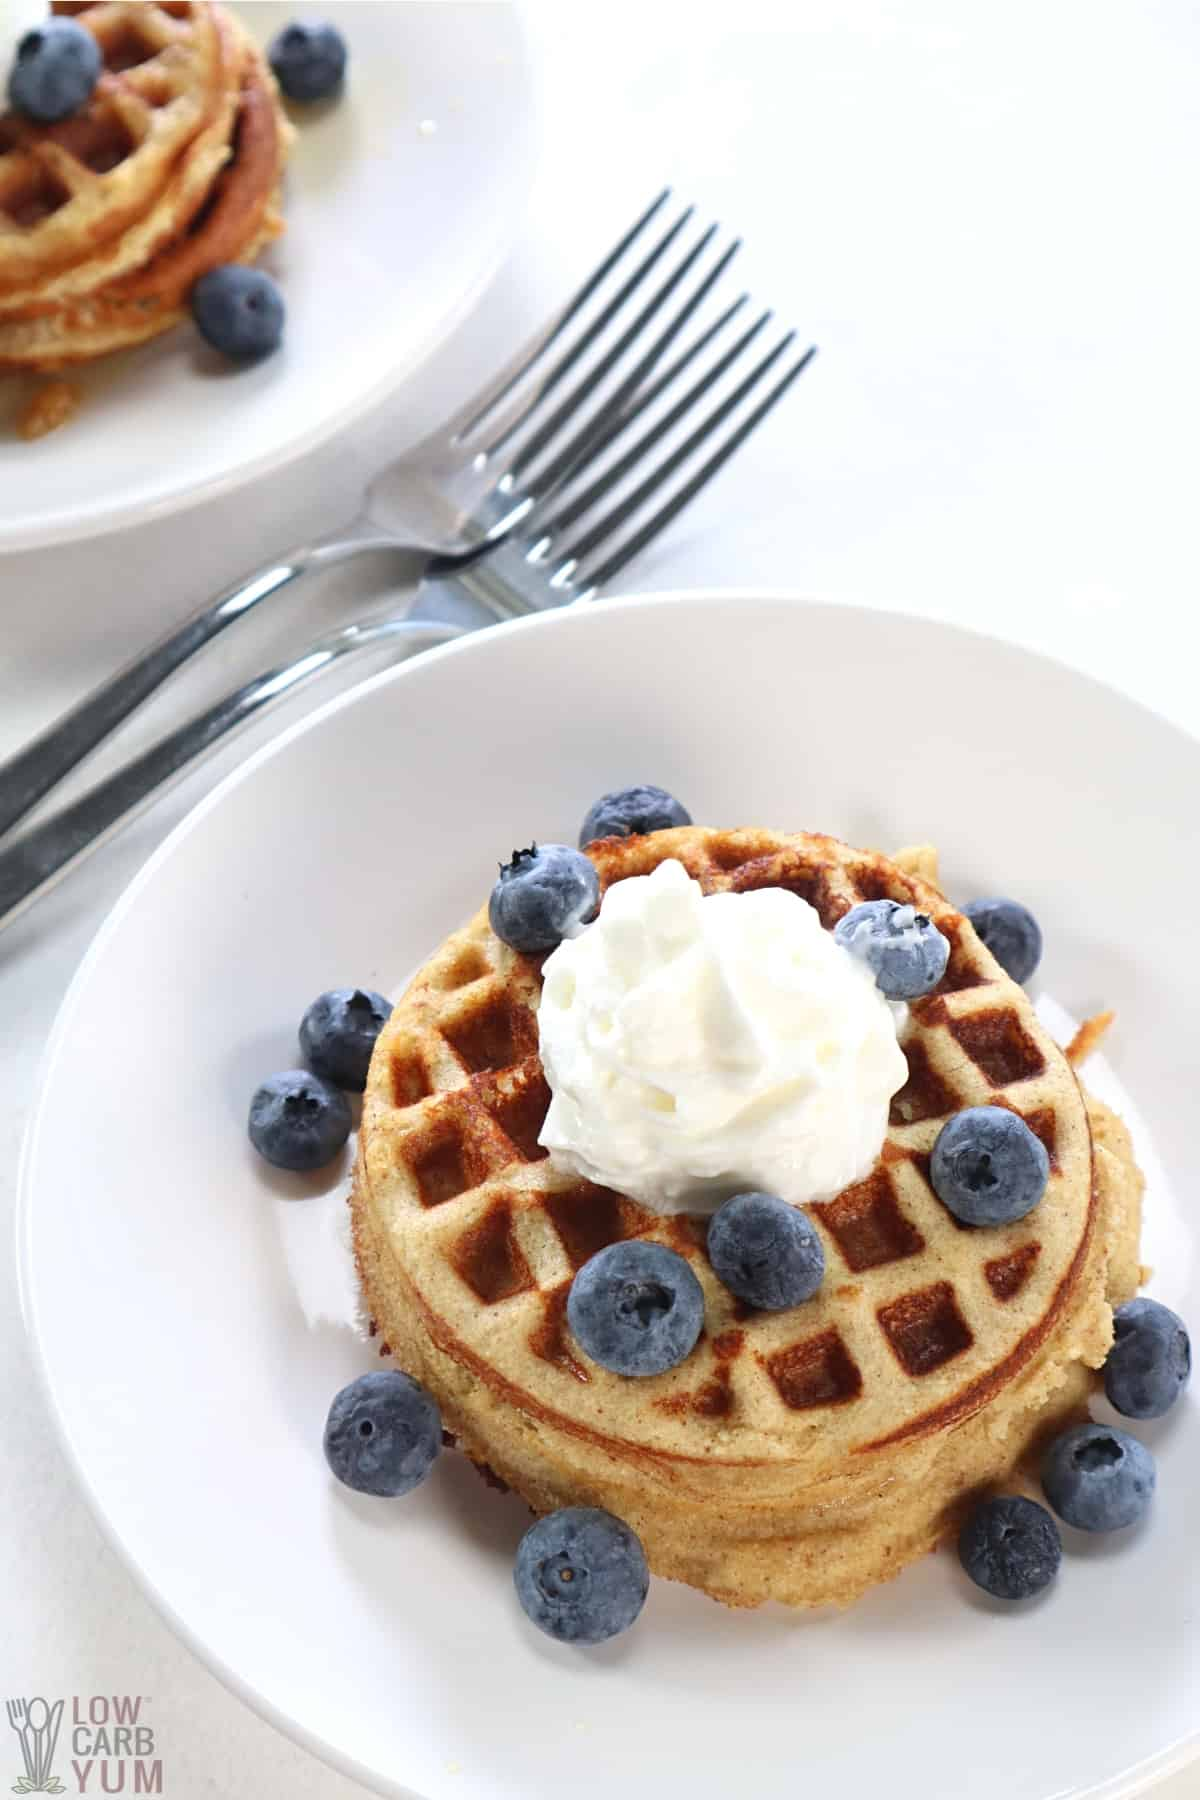 serving cinnamon waffles with blueberries and whipped cream